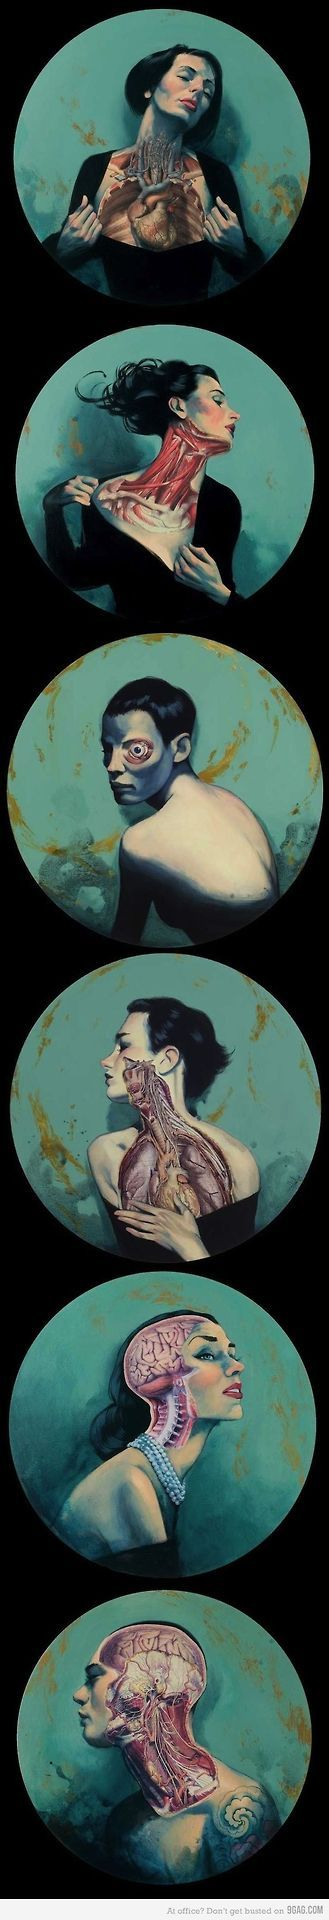 Human Anatomy by Fernando Vicente